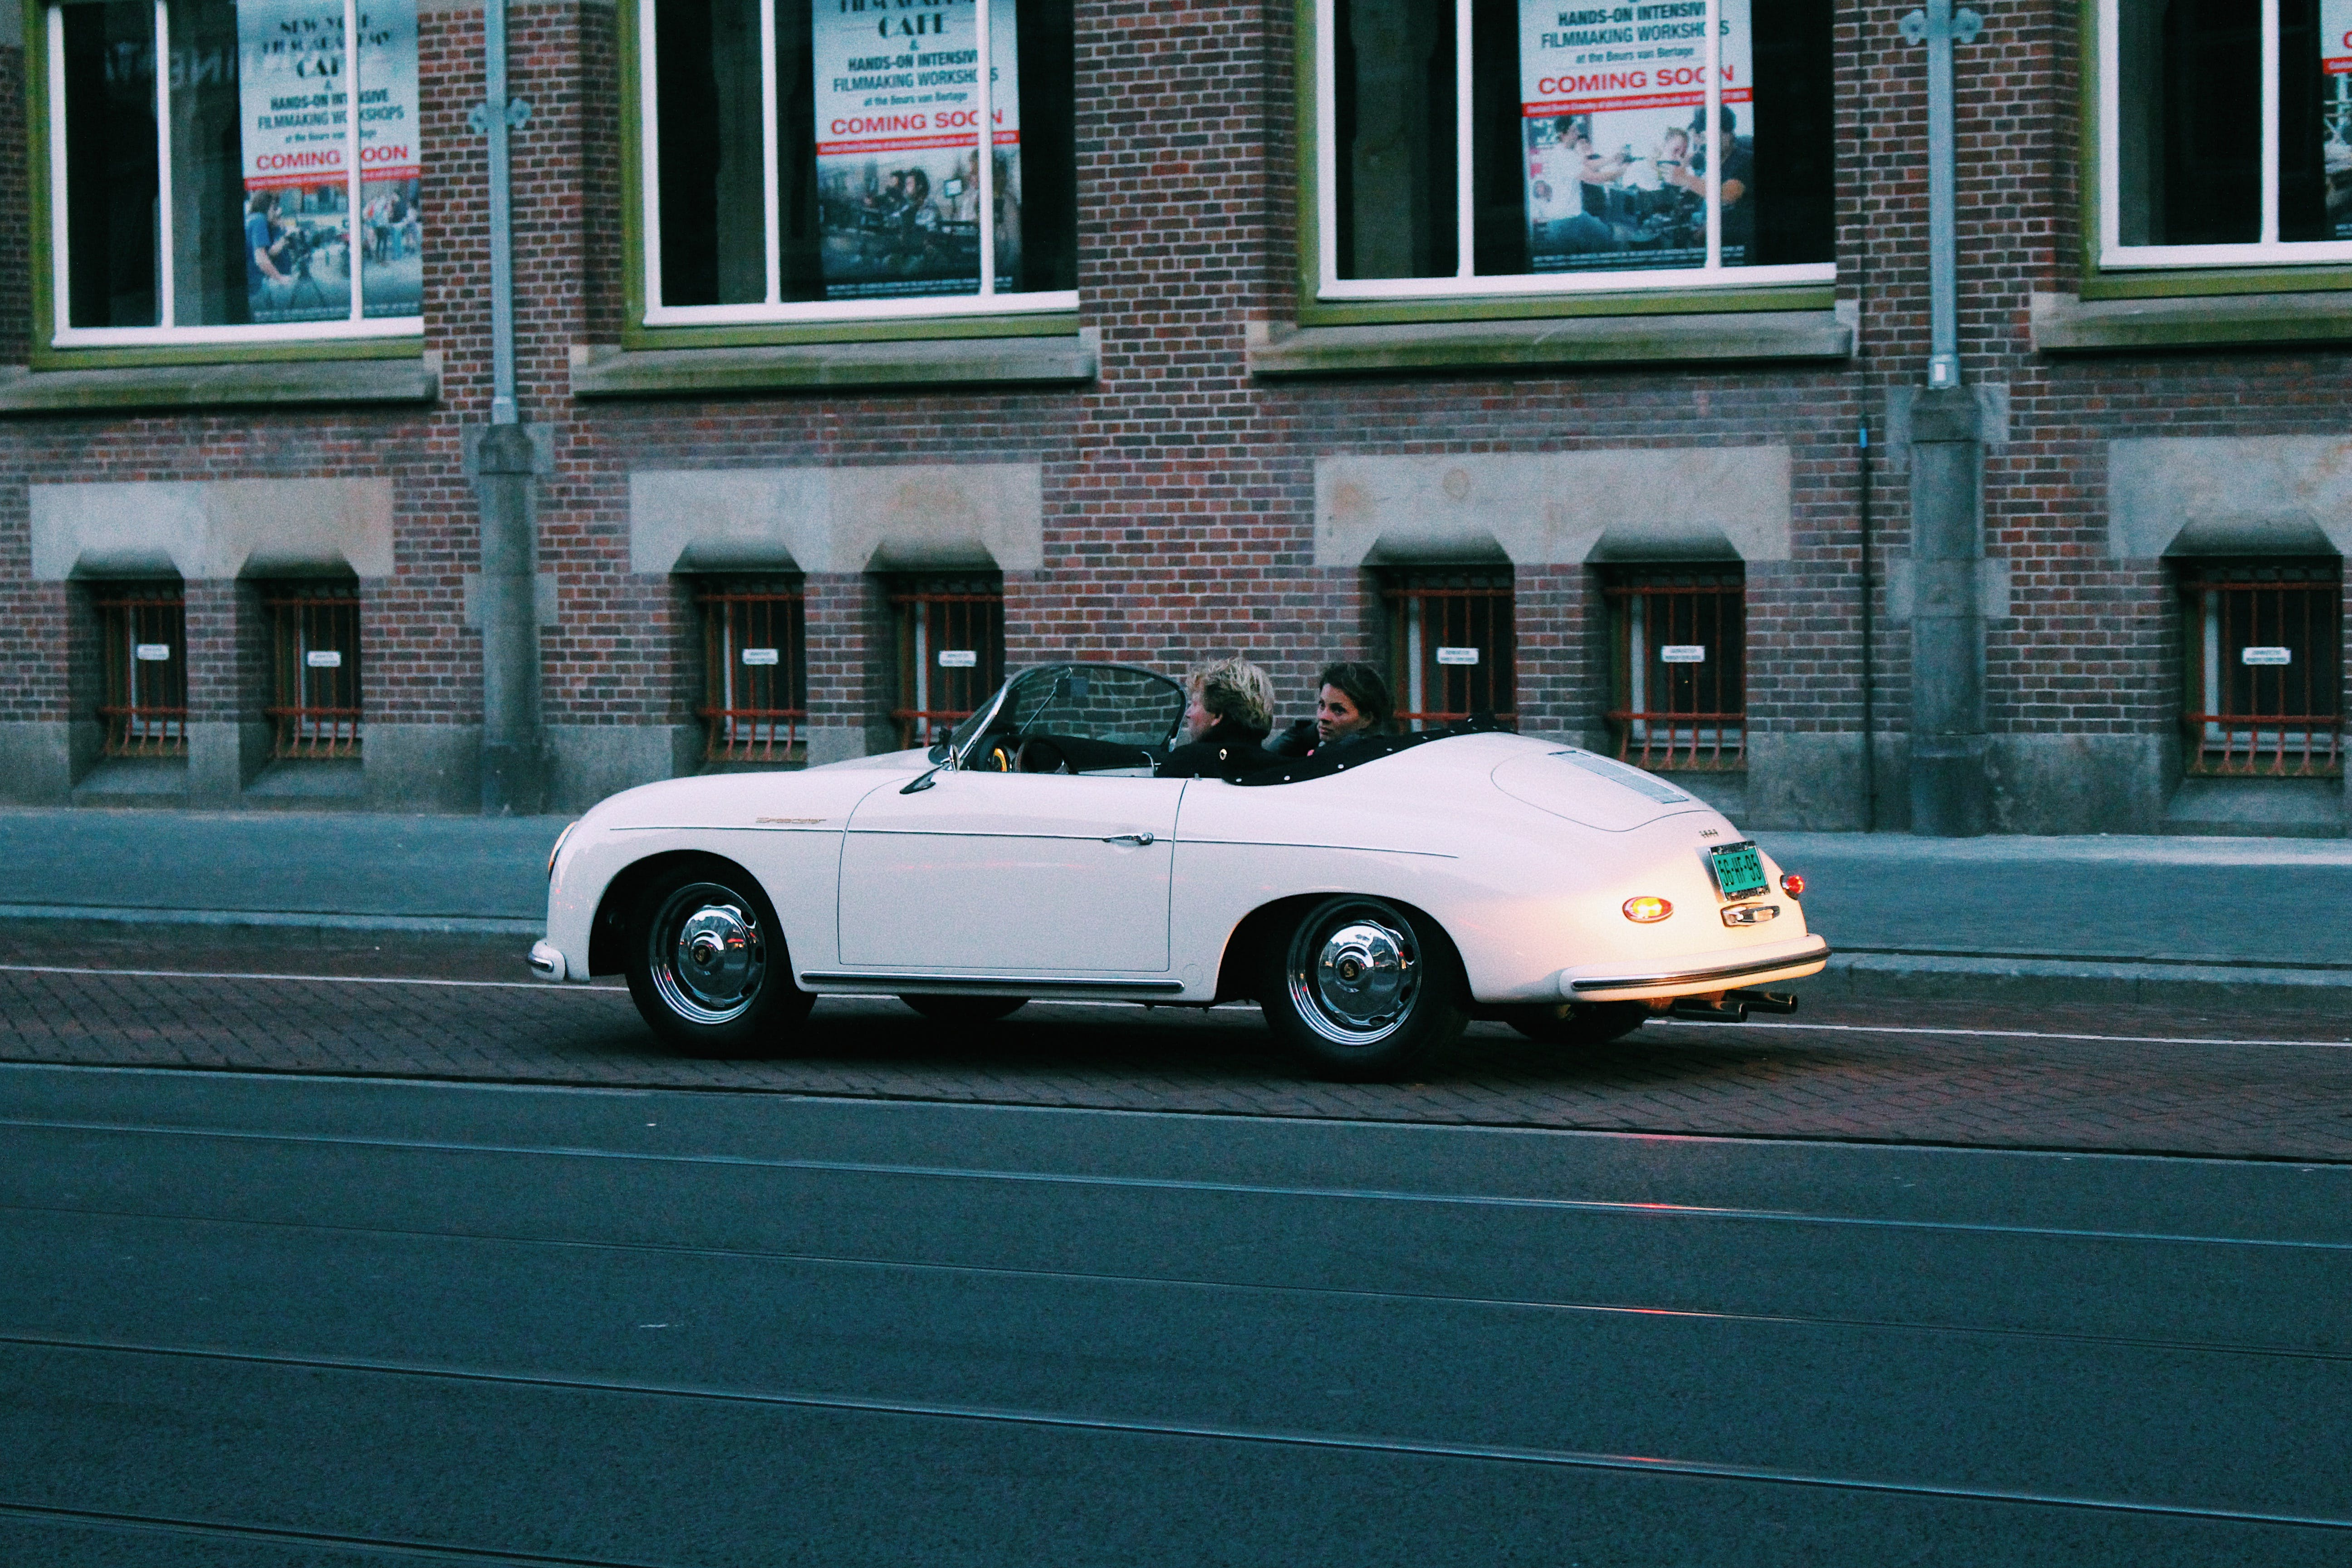 Two People Riding White Classic Convertible Car